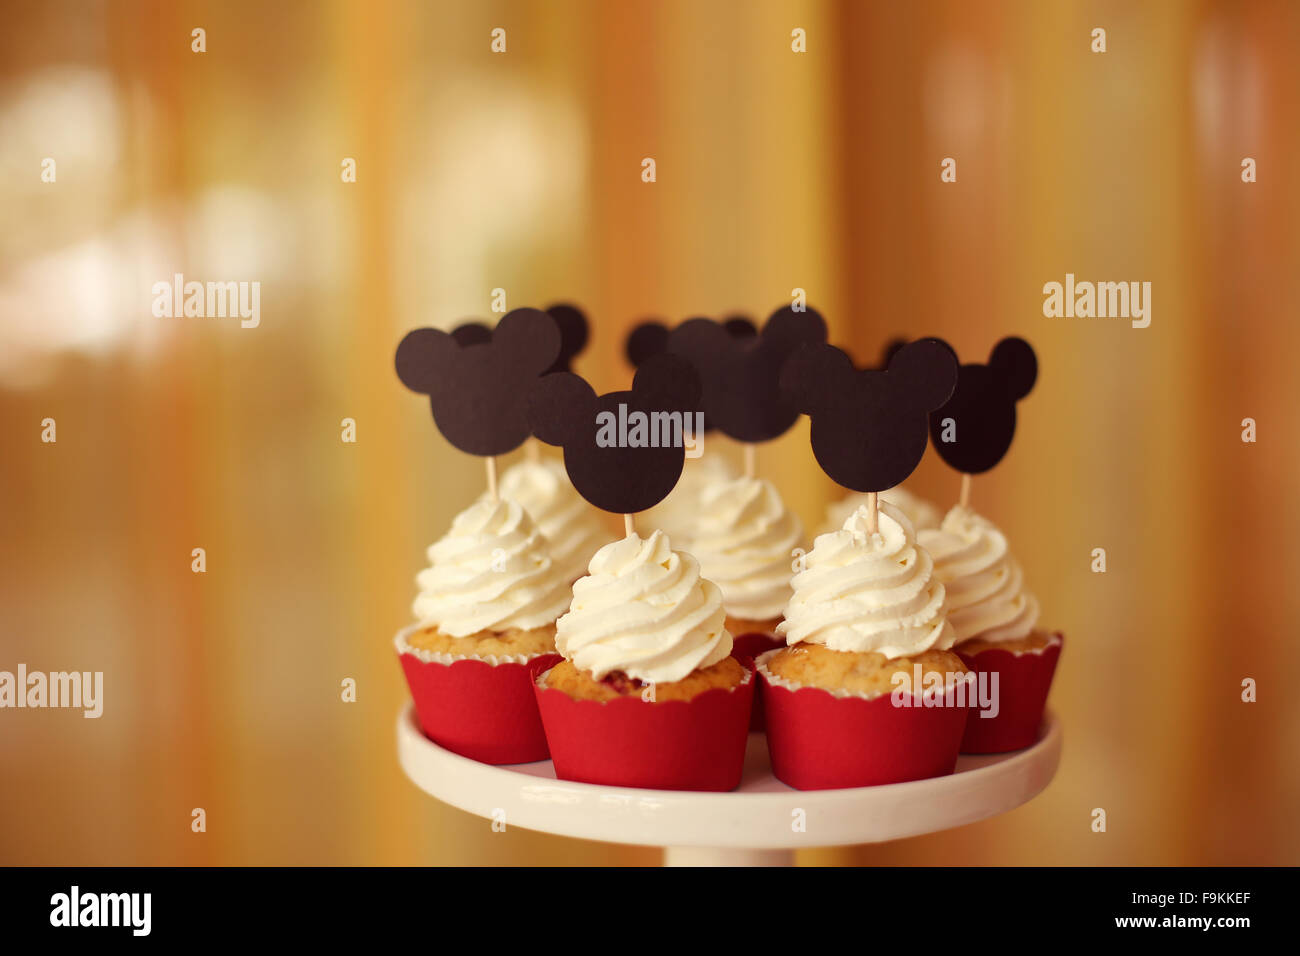 Delicious cupcakes on stand - Stock Image